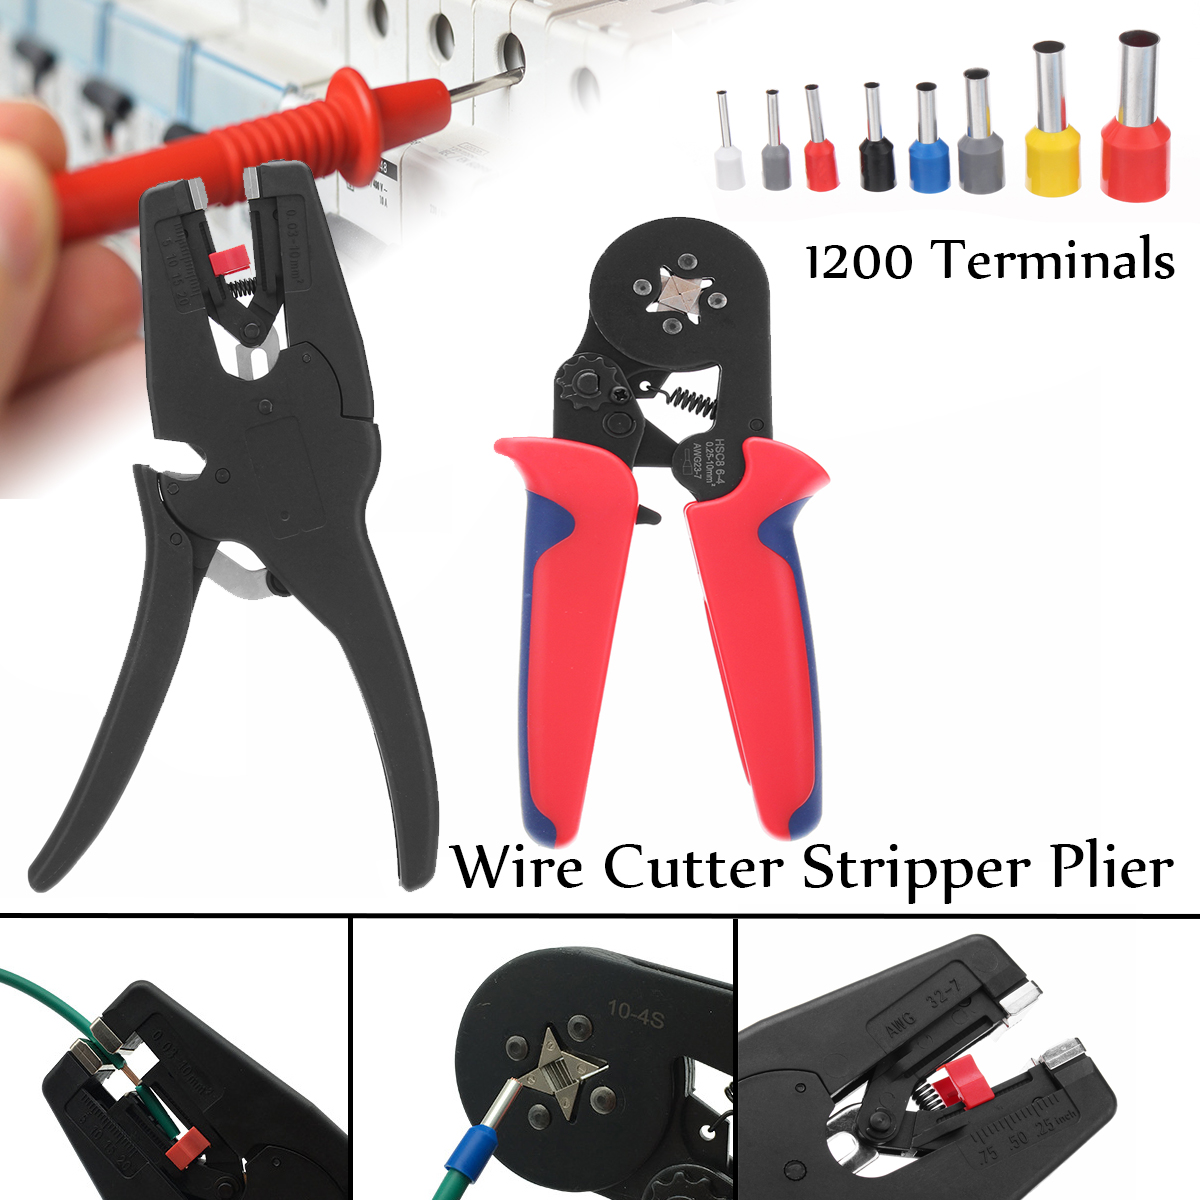 1200Pcs Terminals Kit Crimpong Tool Electric Wire Cutter Pliers Stripper Cable Cutting Crimper Plier Electrician Hand Tools original ganzo multi tool knife pliers 22in1 edc hand tool set pliers 440c 58hrc g202b g202 multifunctional hand folding plier